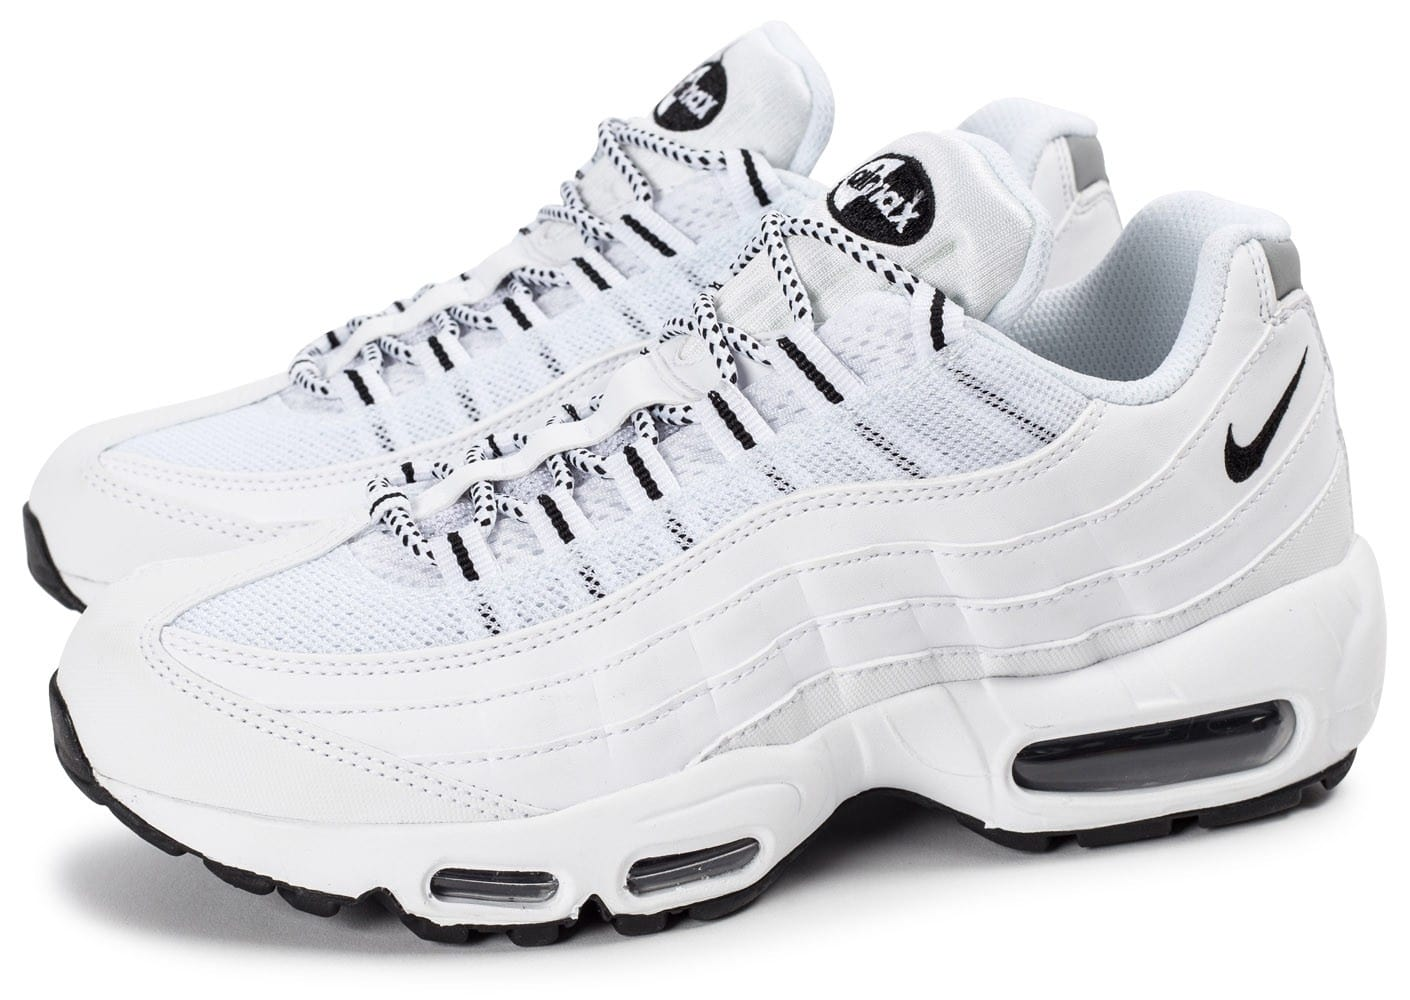 Homme Baskets Basses Nike Air Max'95 Blanc Chaussures